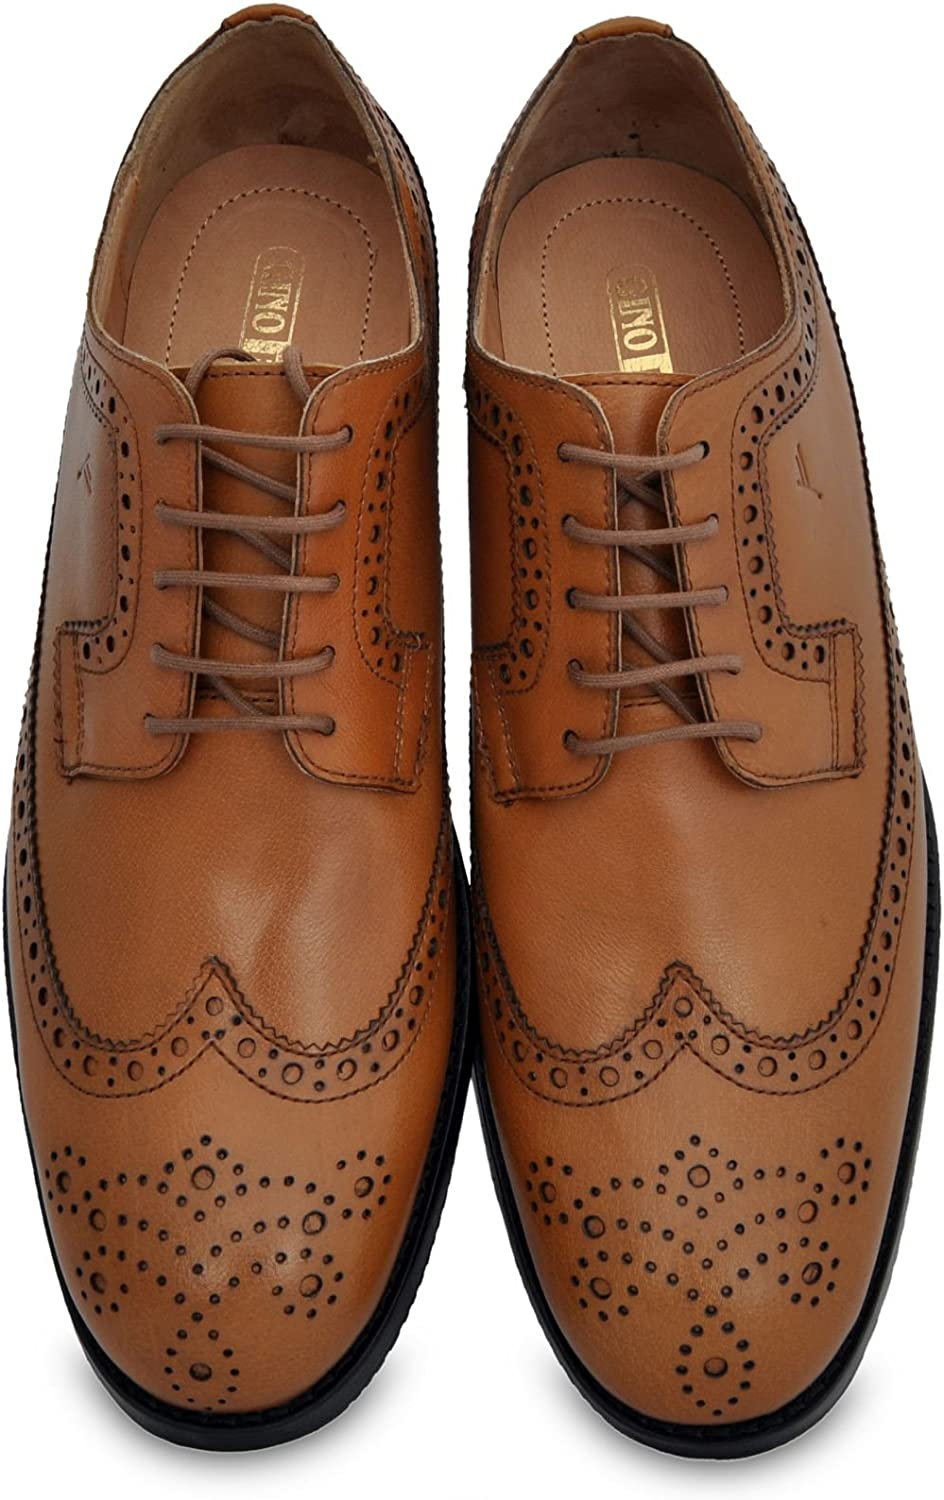 Gino Romano Brogue shoes for Men - Full Grain Premium Leather and Imported silverinian Leather Sole